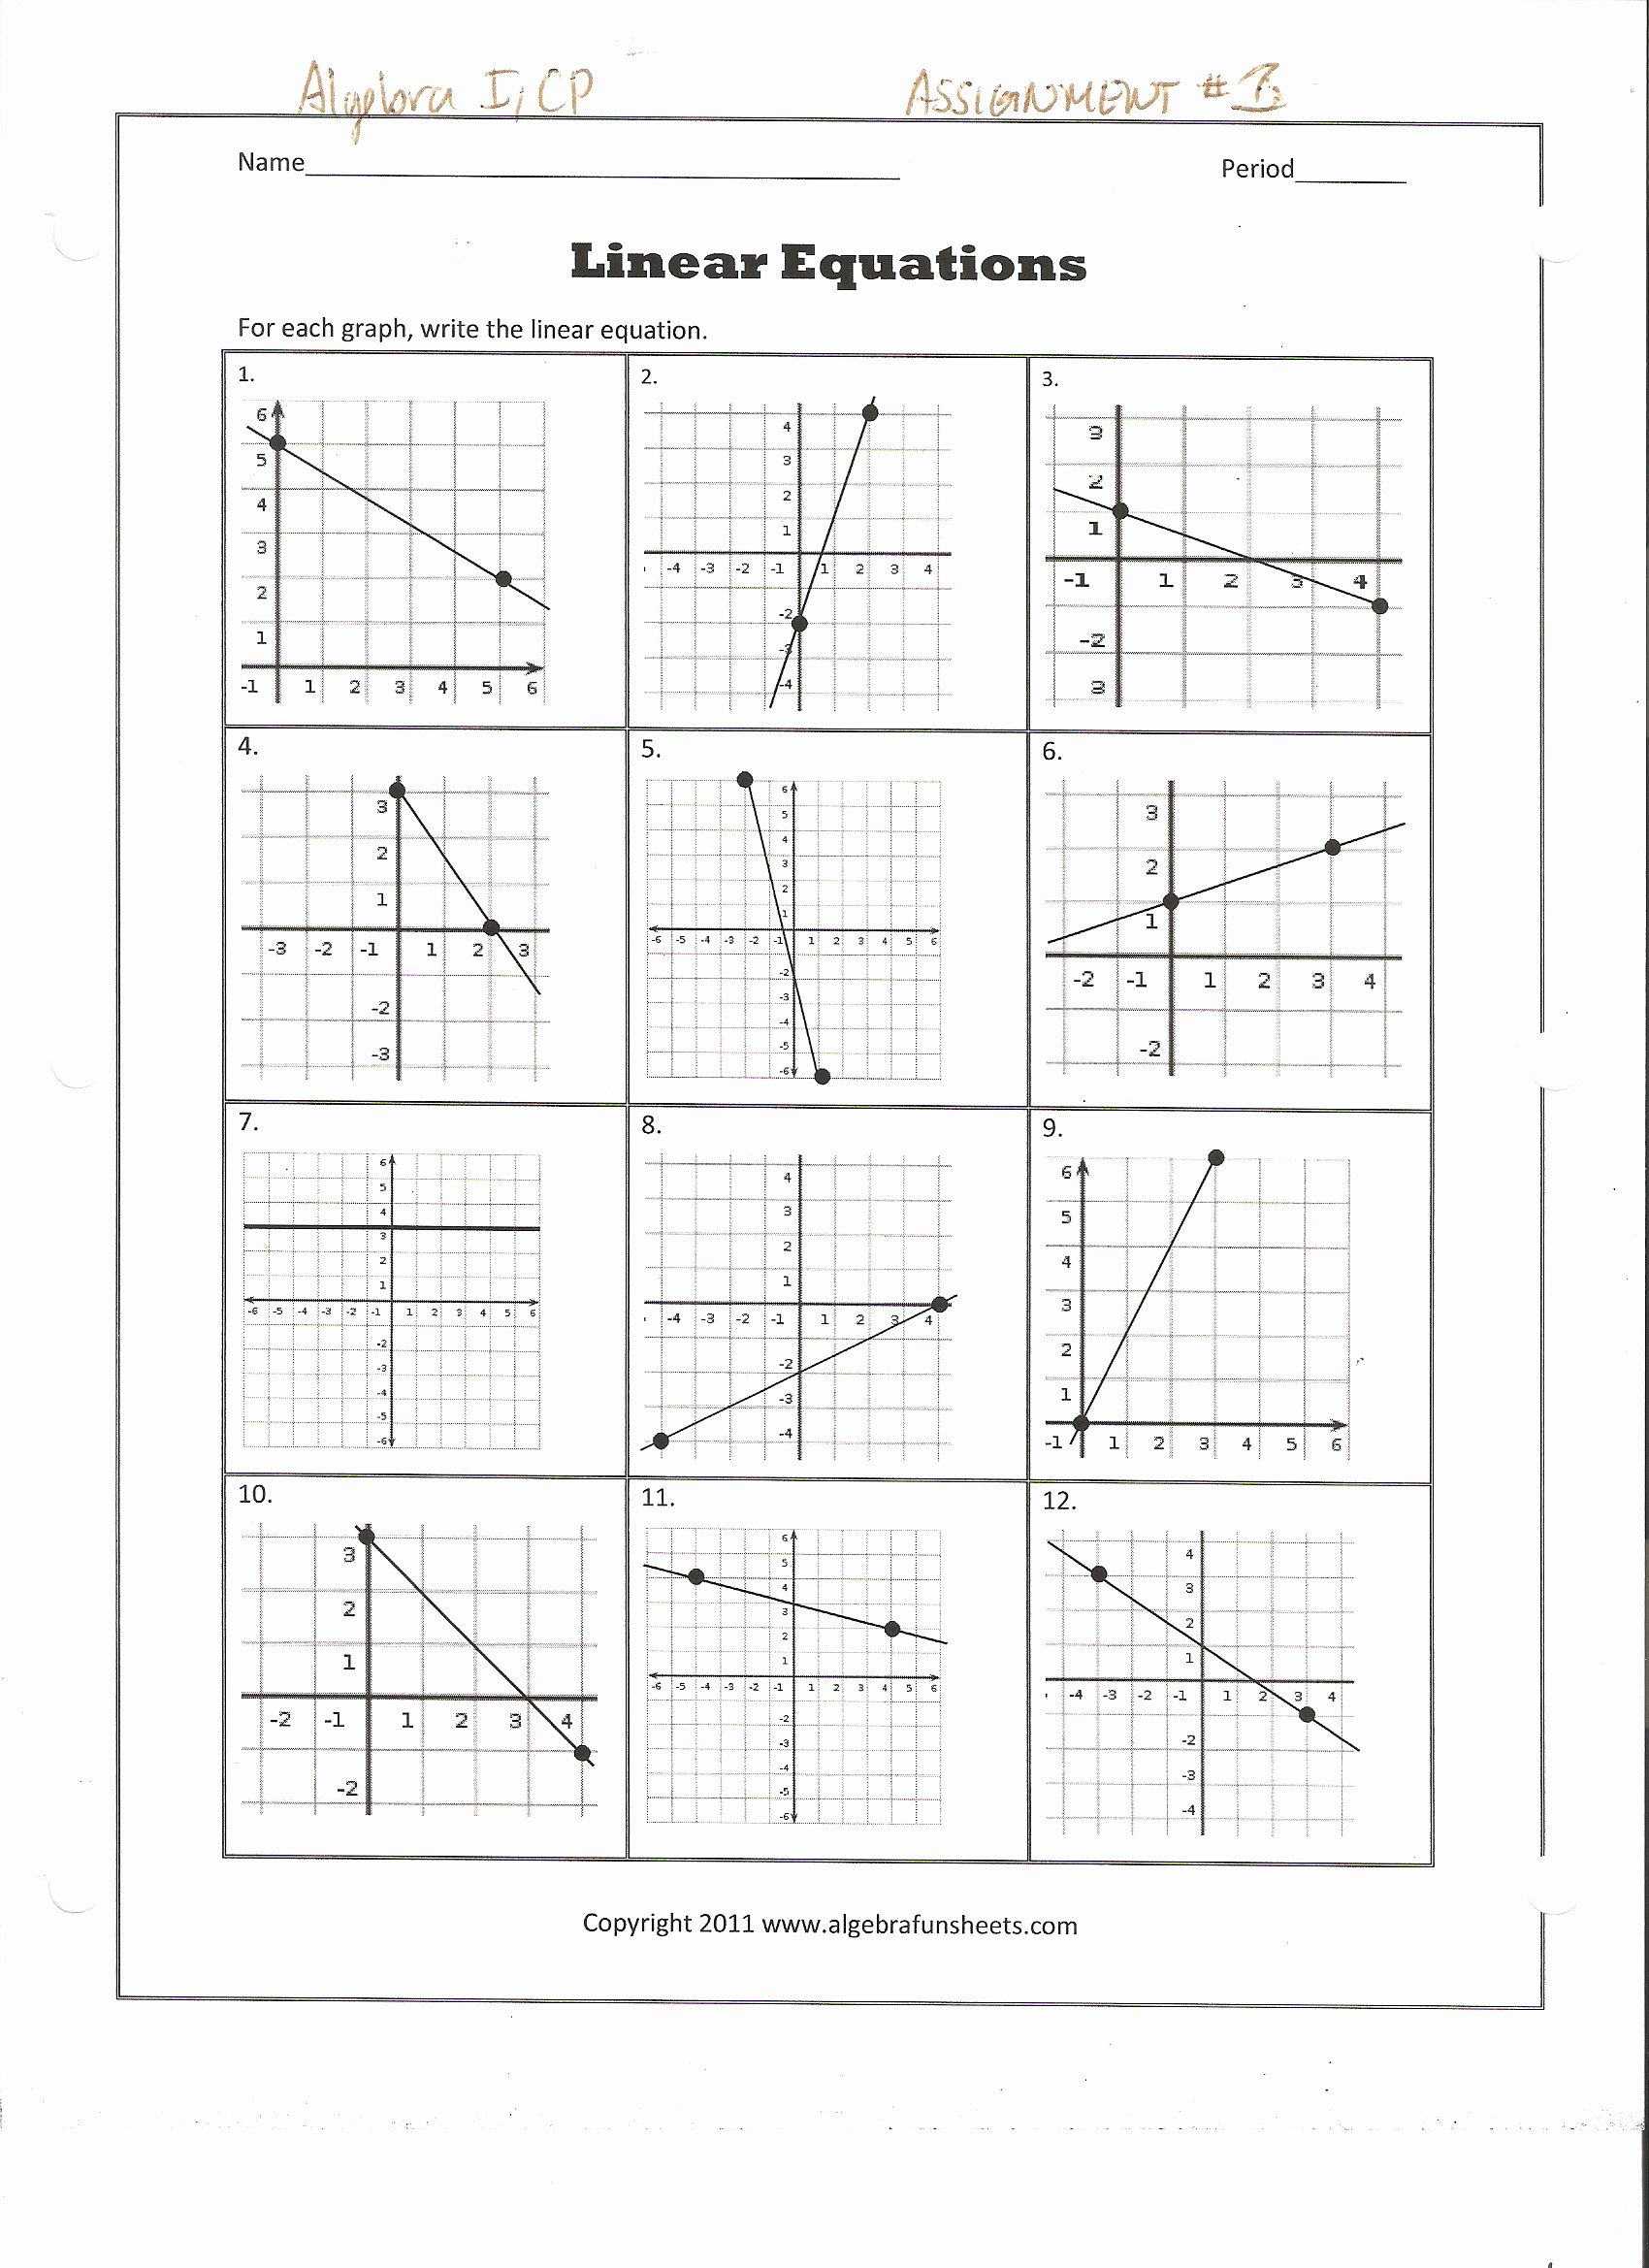 Writing Equations From Graphs Worksheet Awesome Writing Equations From Graphs and Tables Worksheet the